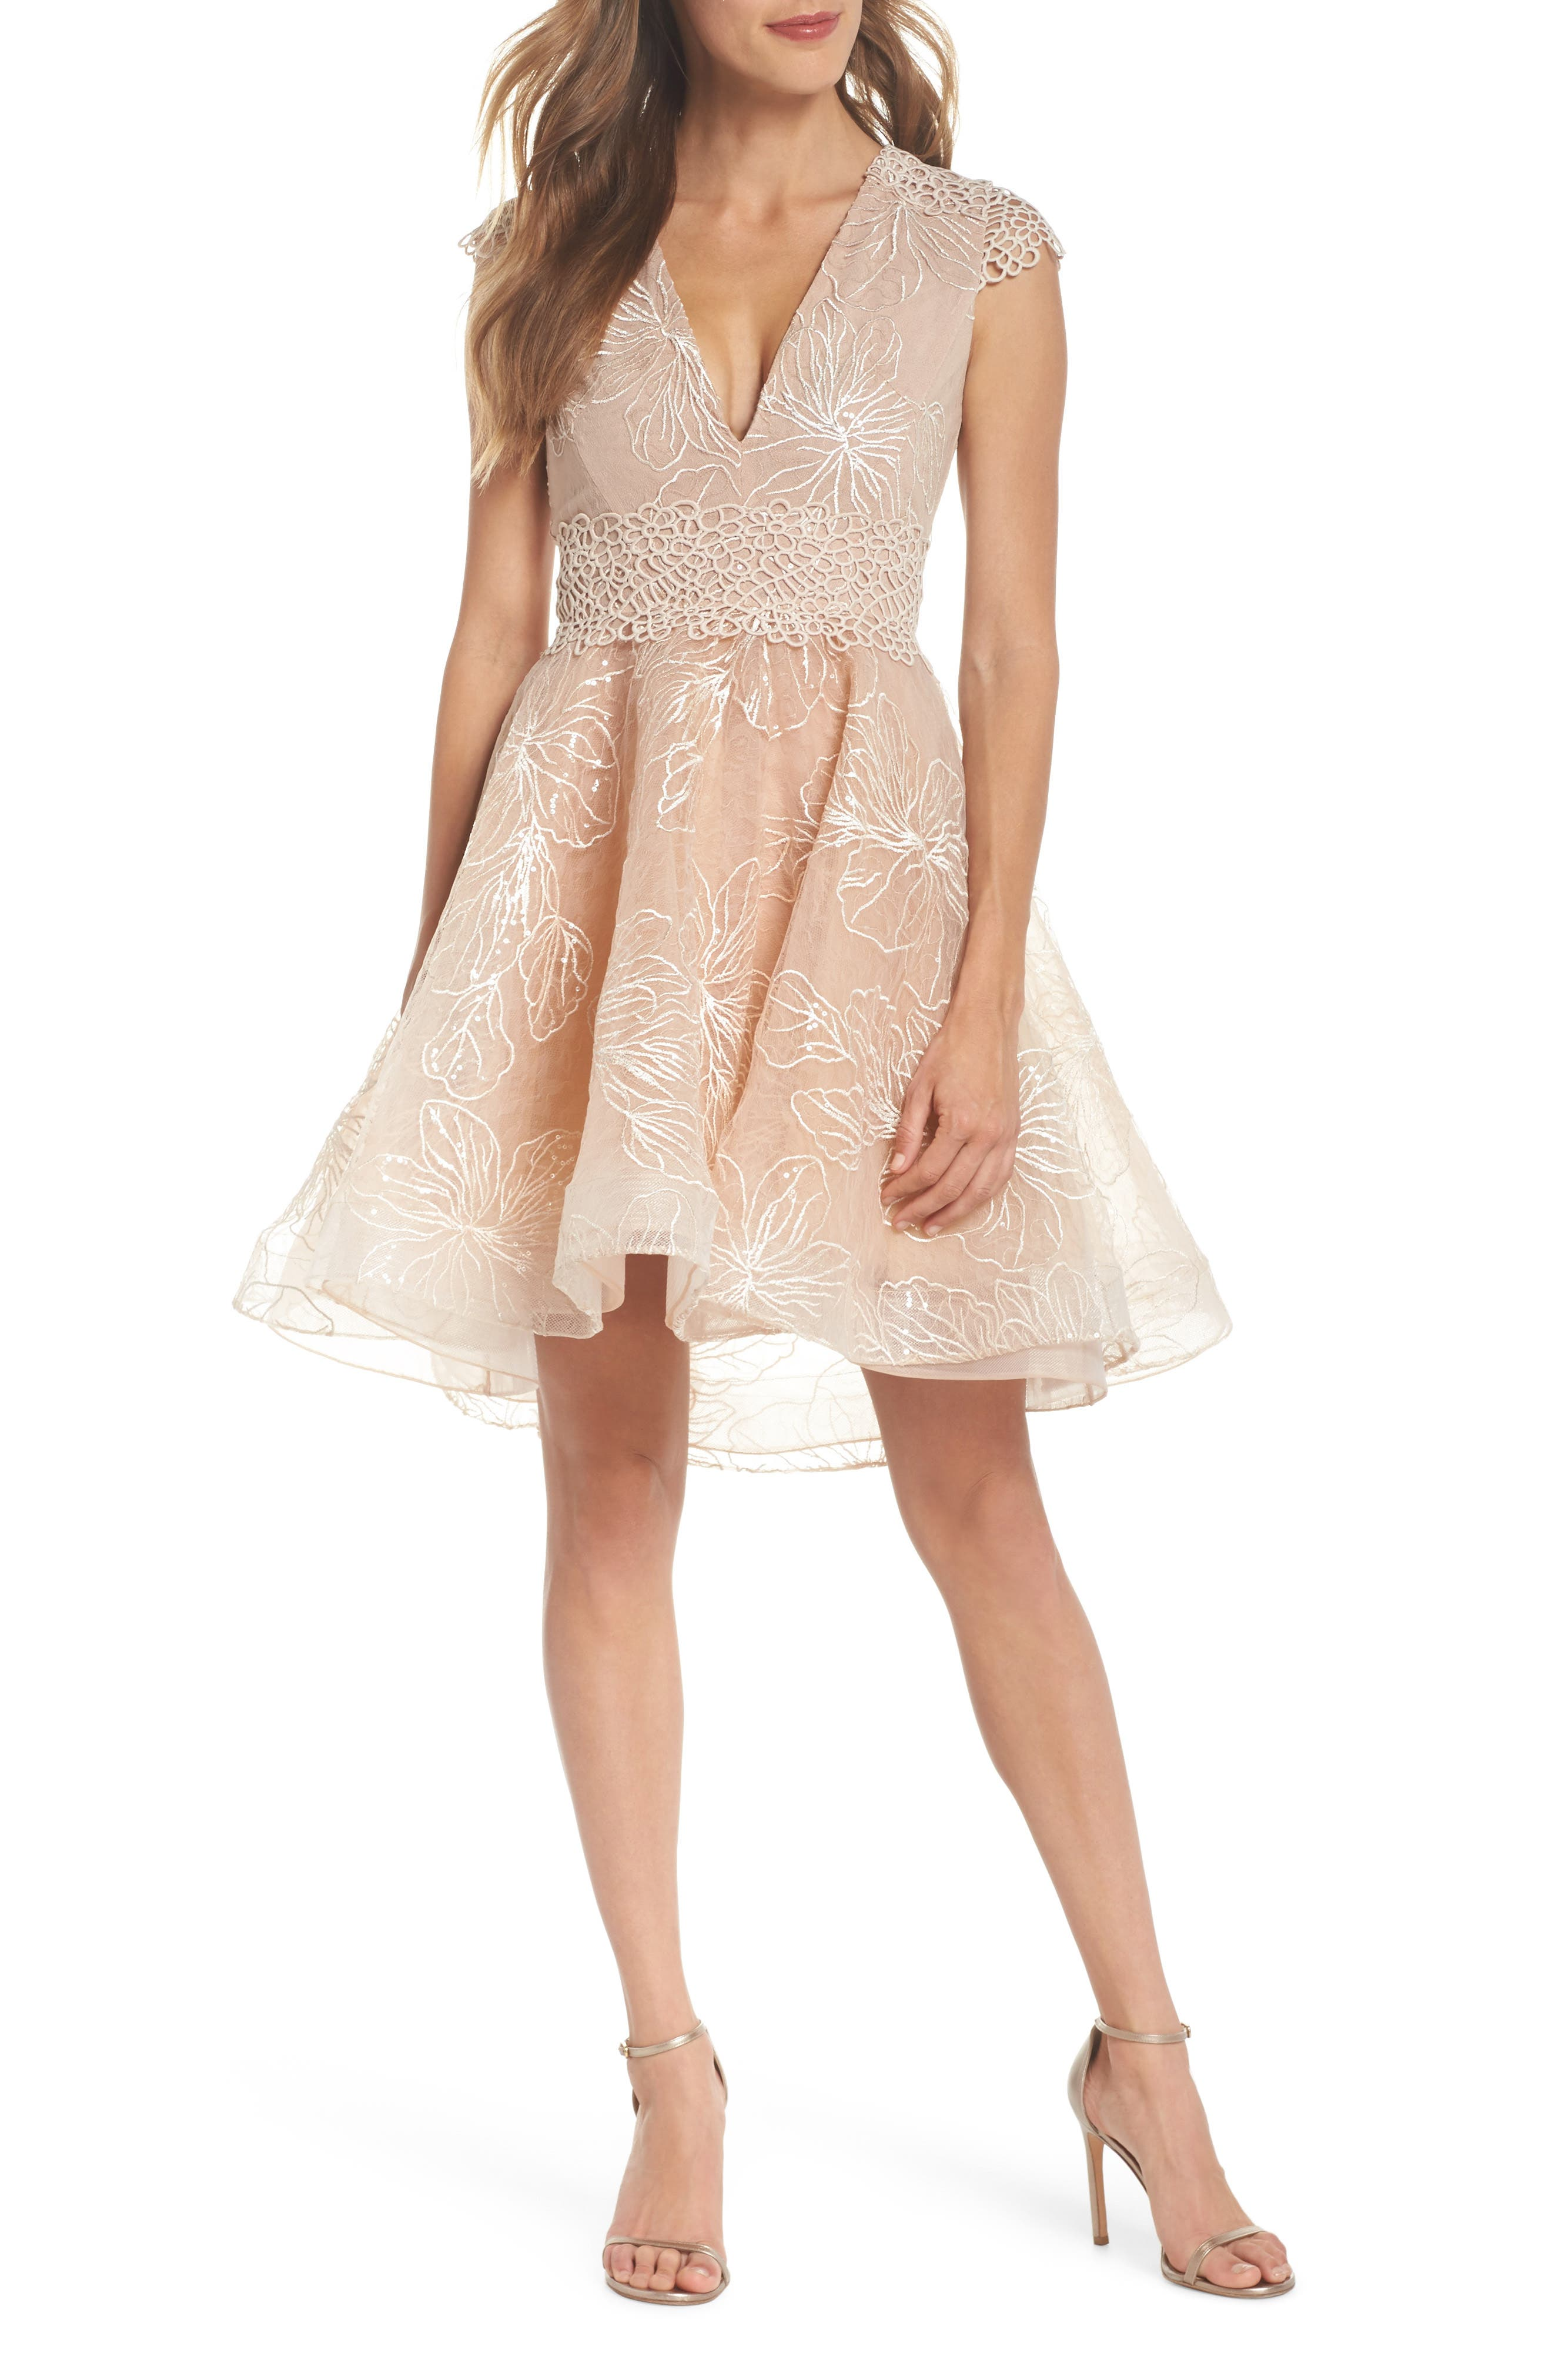 Homecoming Dresses at Nordstrom